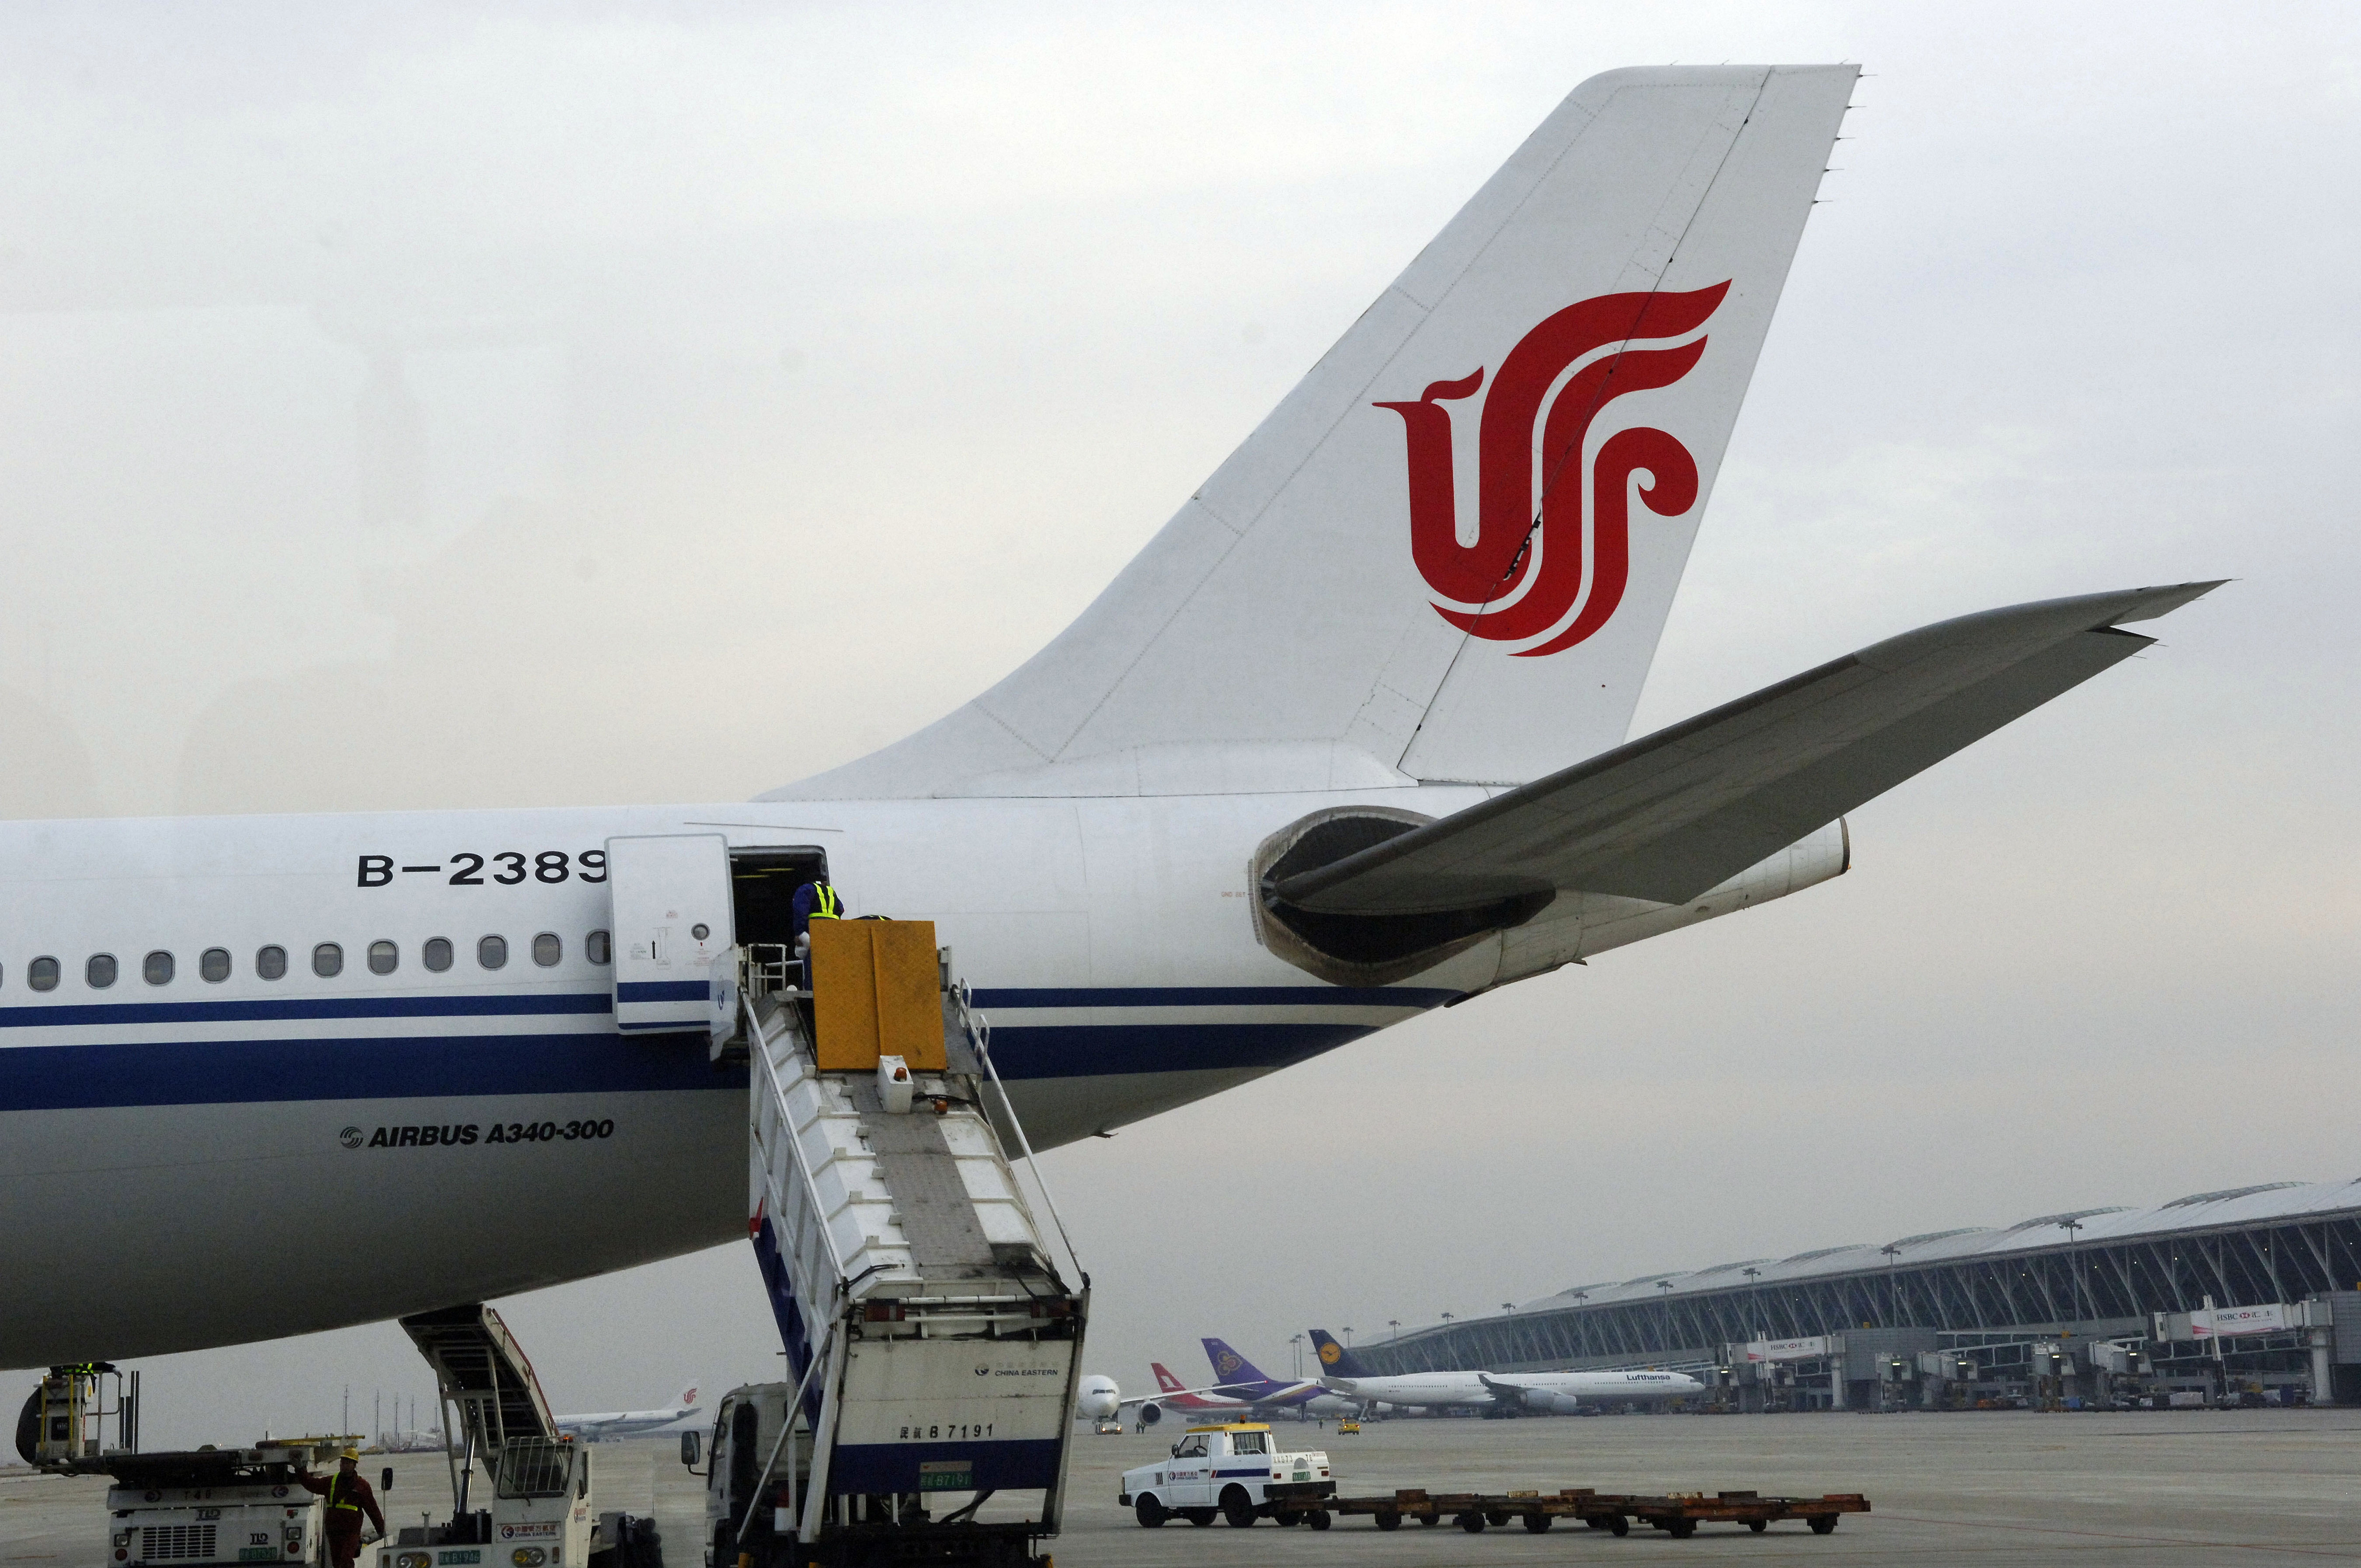 The tail of an Airbus plane of Air China in Beijing International Airport